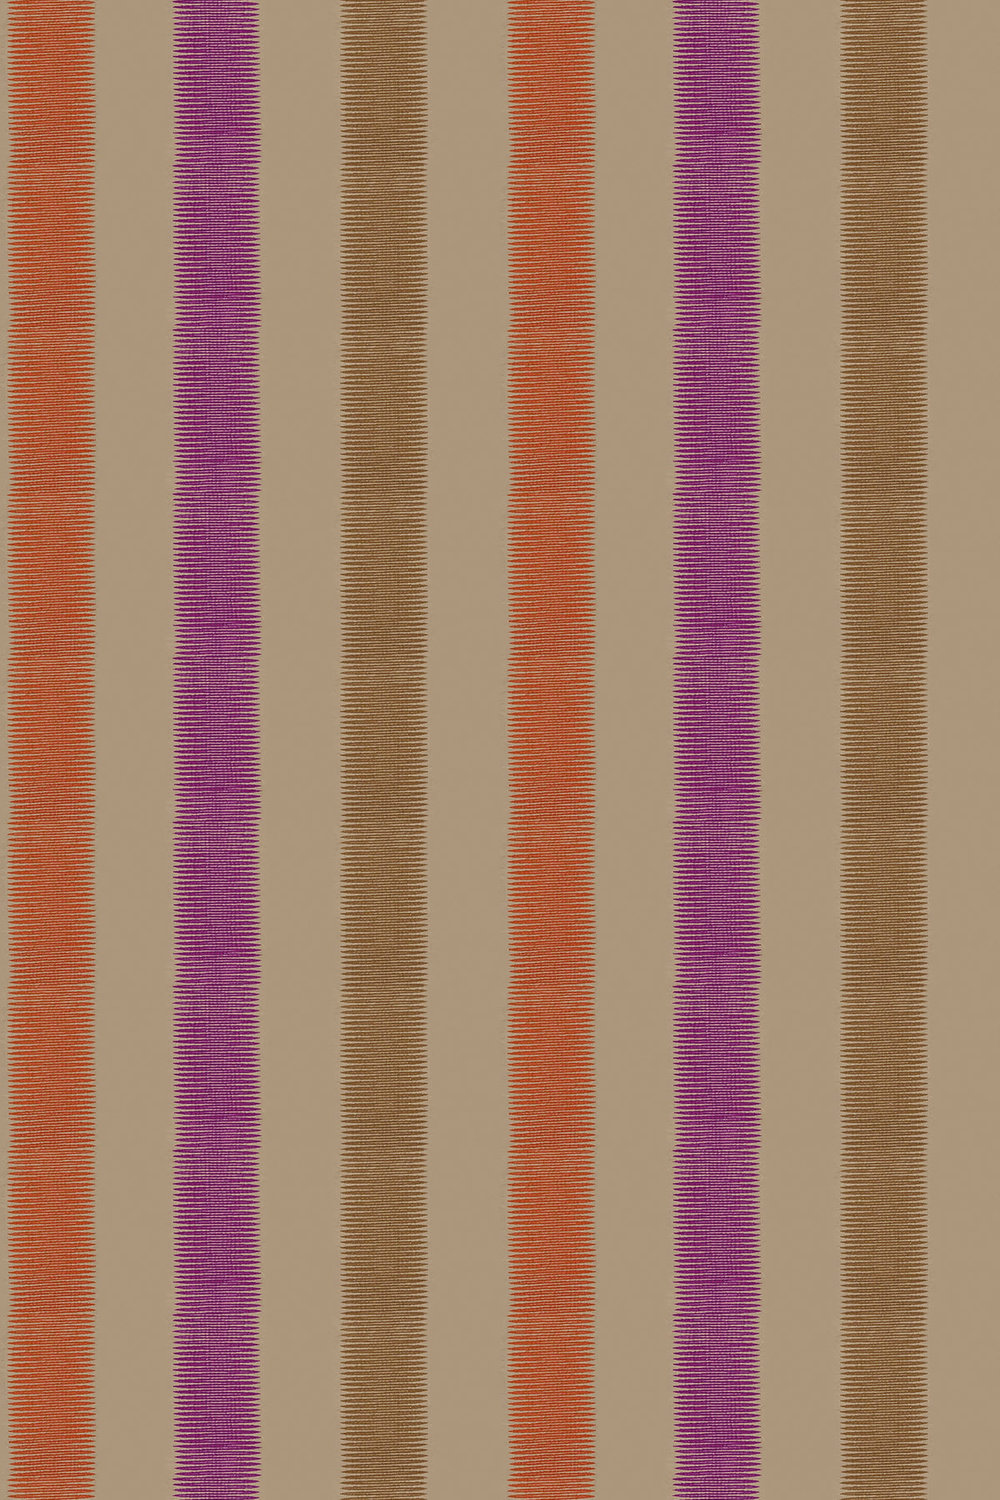 Harlequin Tambo Papaya/Mustard/Loganberry Fabric - Product code: 131525